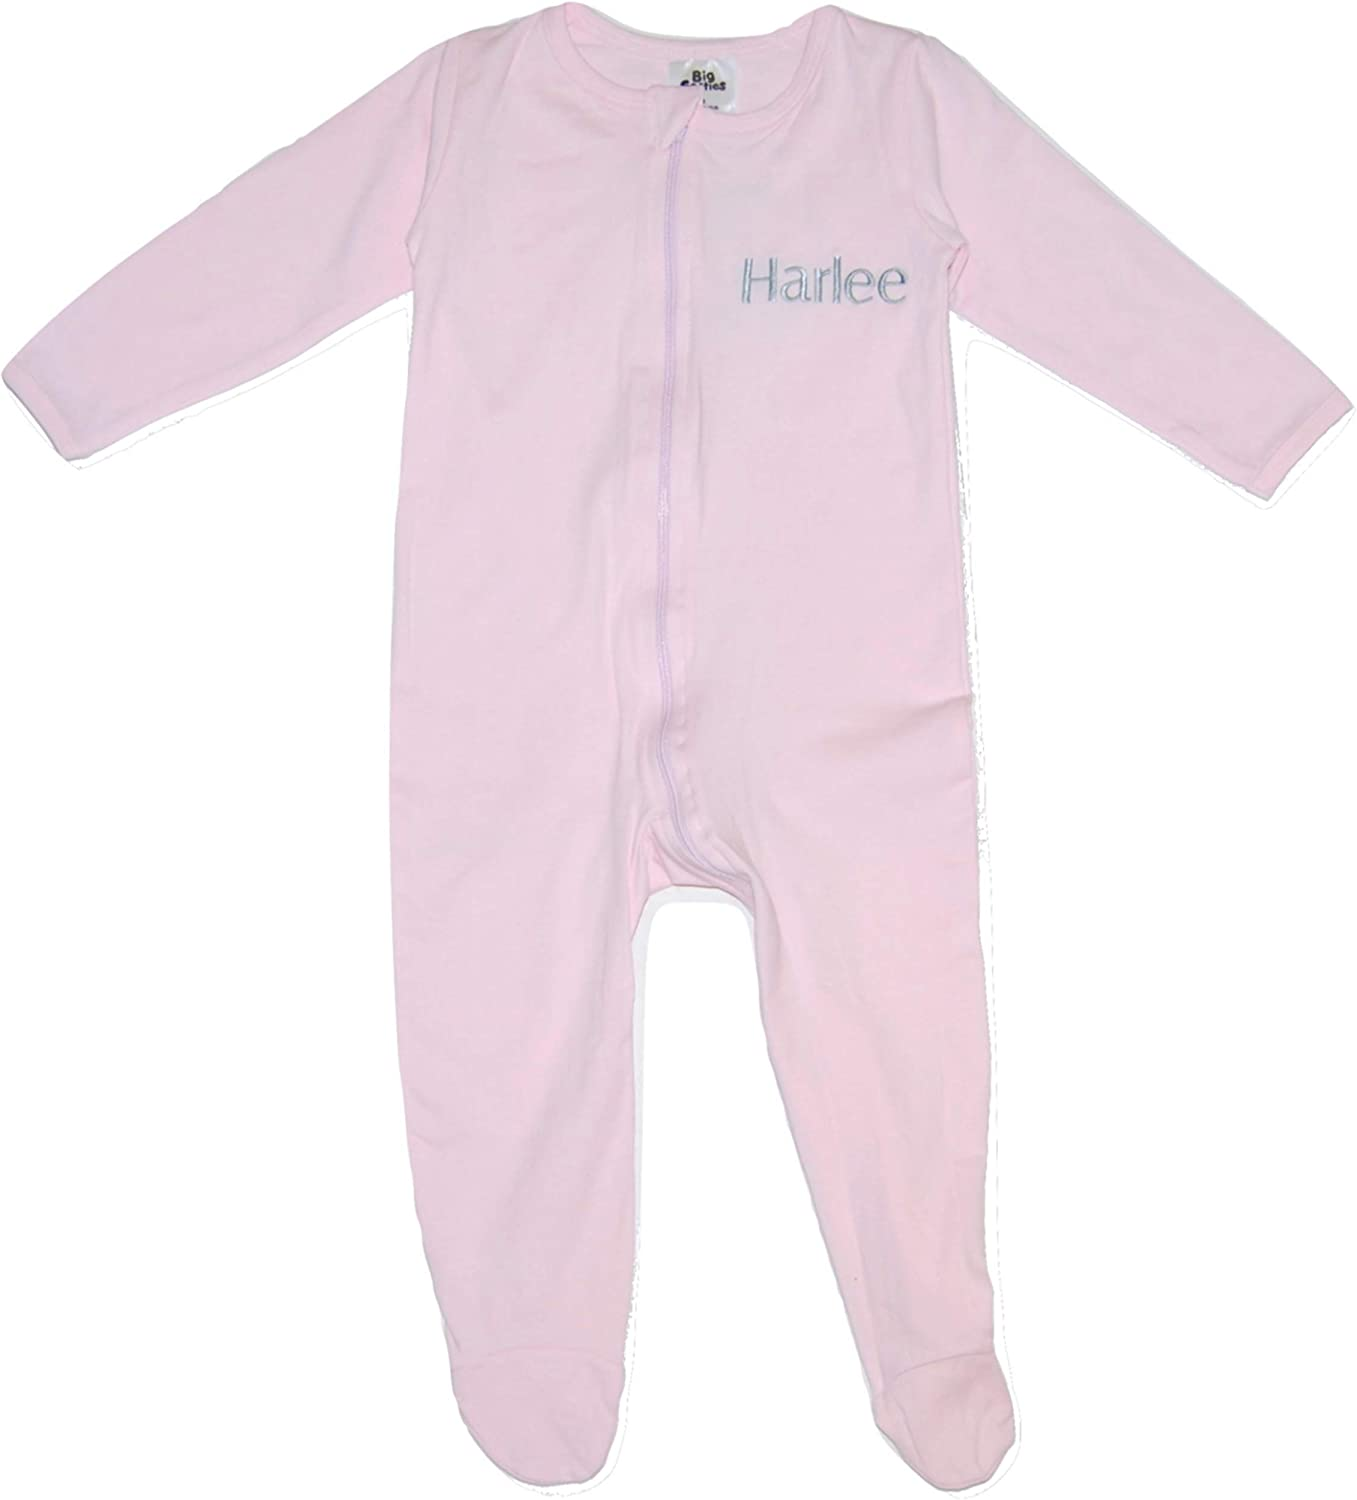 Big Softies Baby Girl Boy Personalised Sleepsuit Romper Embroidered Name Grey Blue Pink